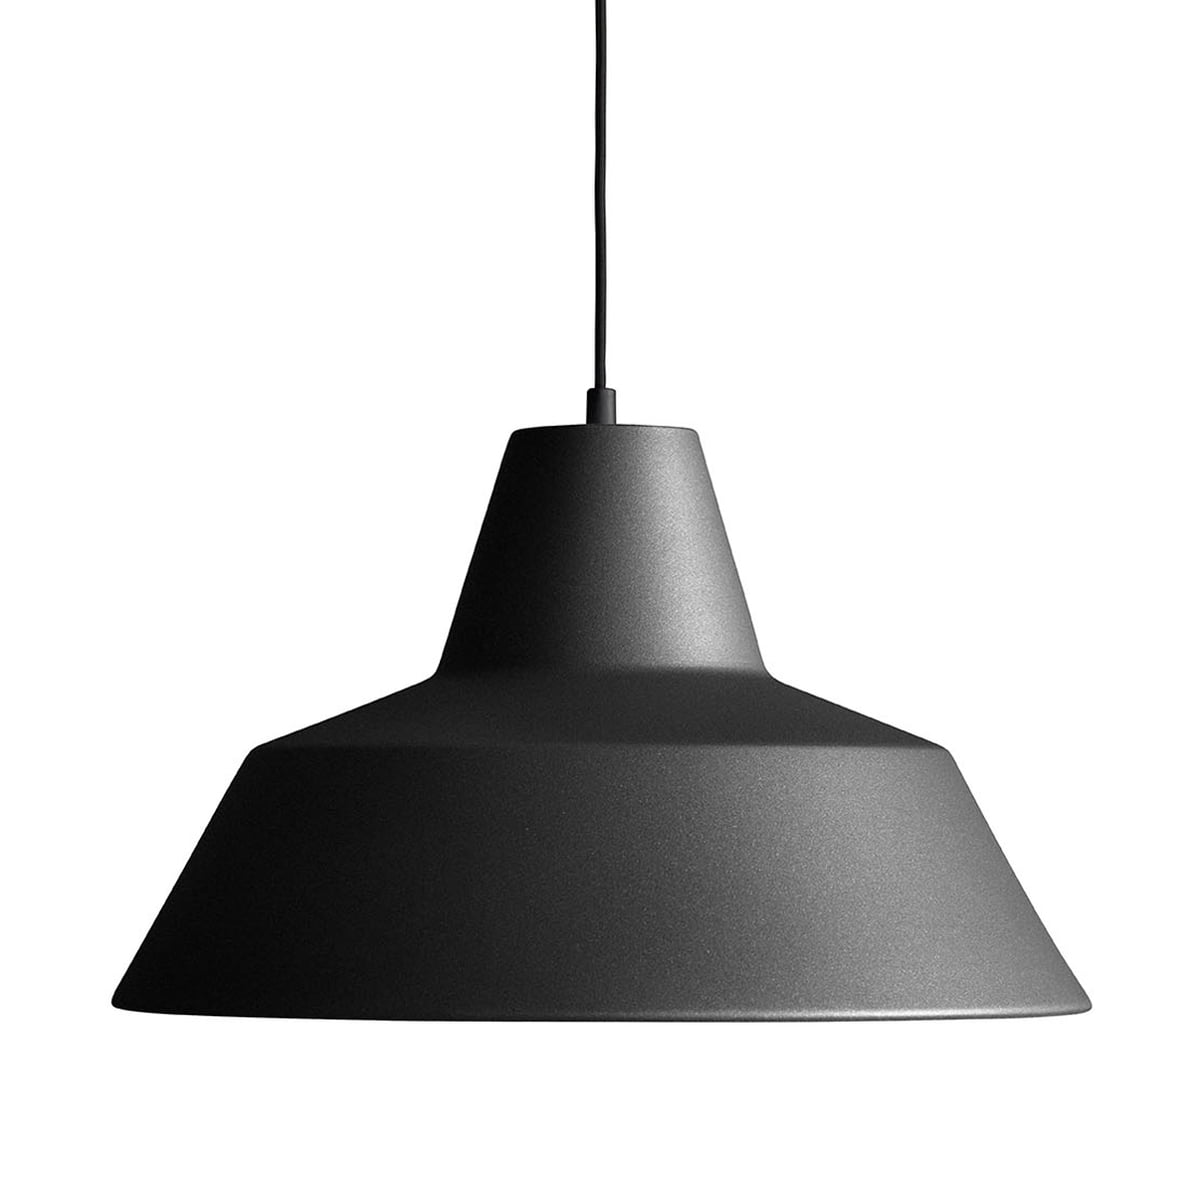 Workshop lamp from made by hand in the shop made by hand workshop lamp w4 in anthracite black arubaitofo Choice Image